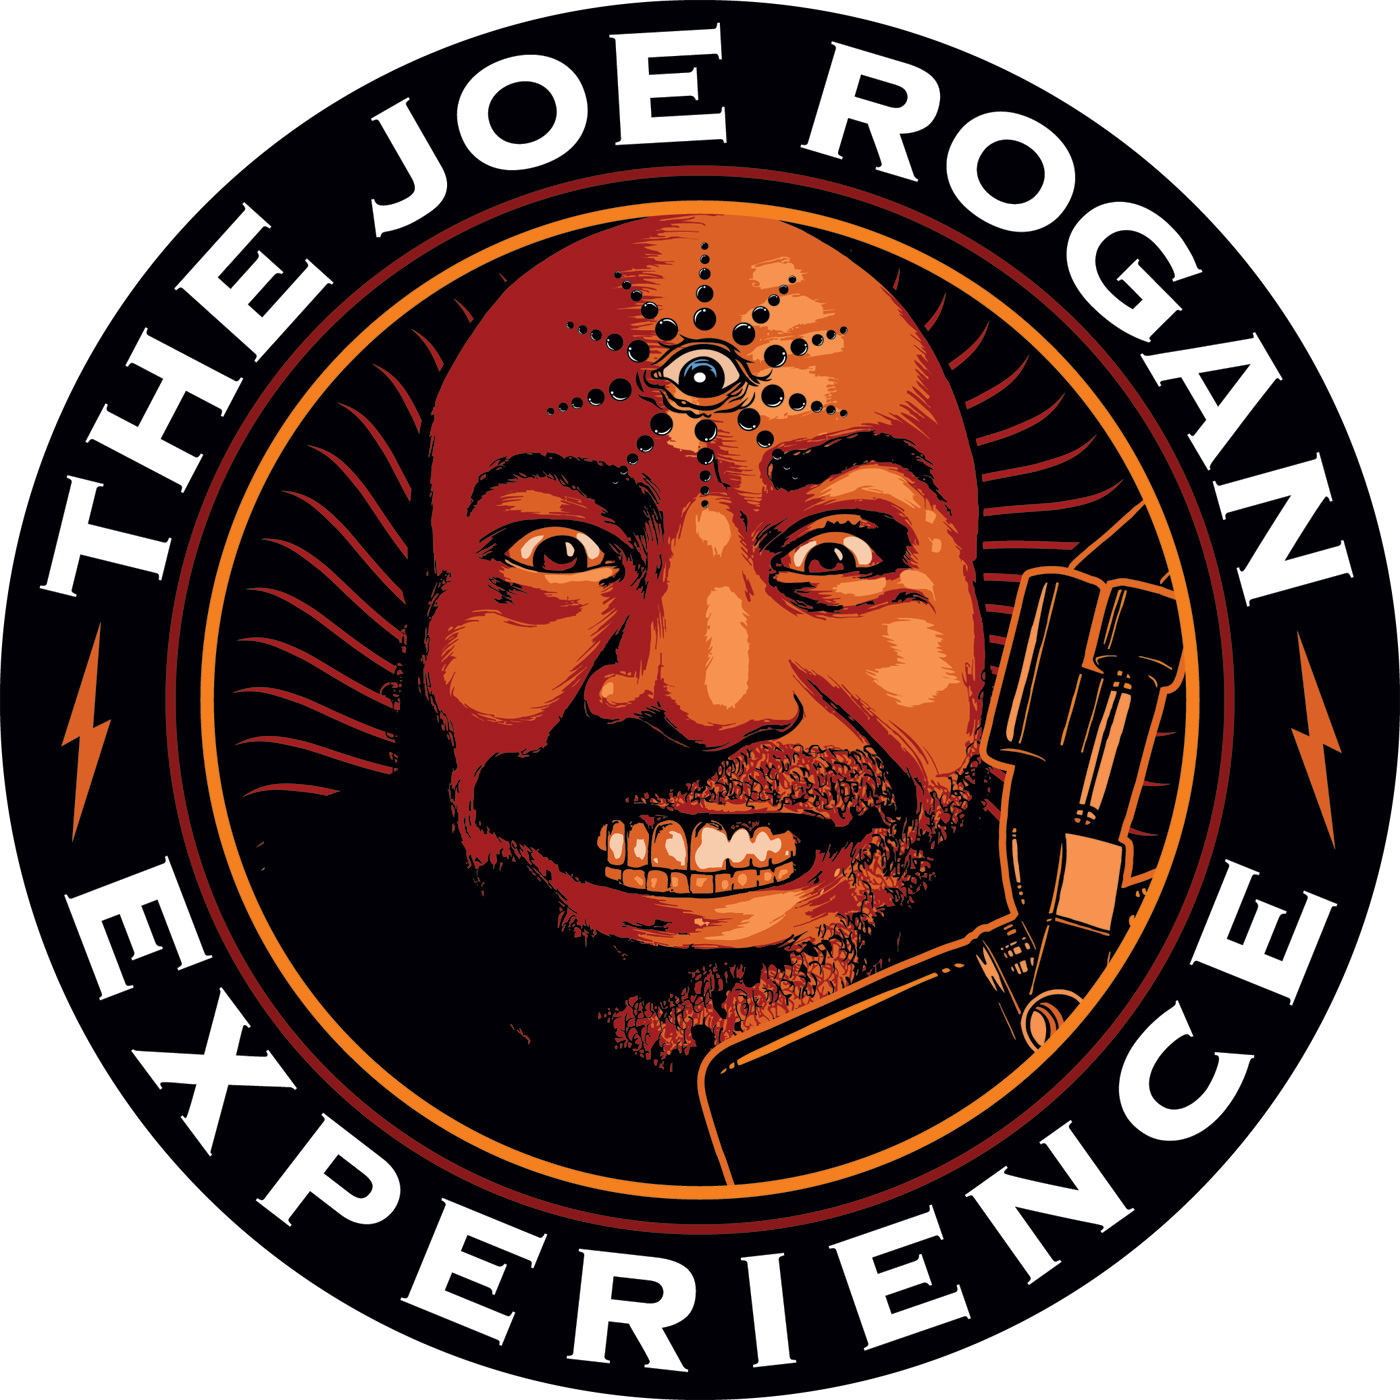 The Joe Rogan Experience PODCAST #24 - Eddie Bravo, Brian Redban